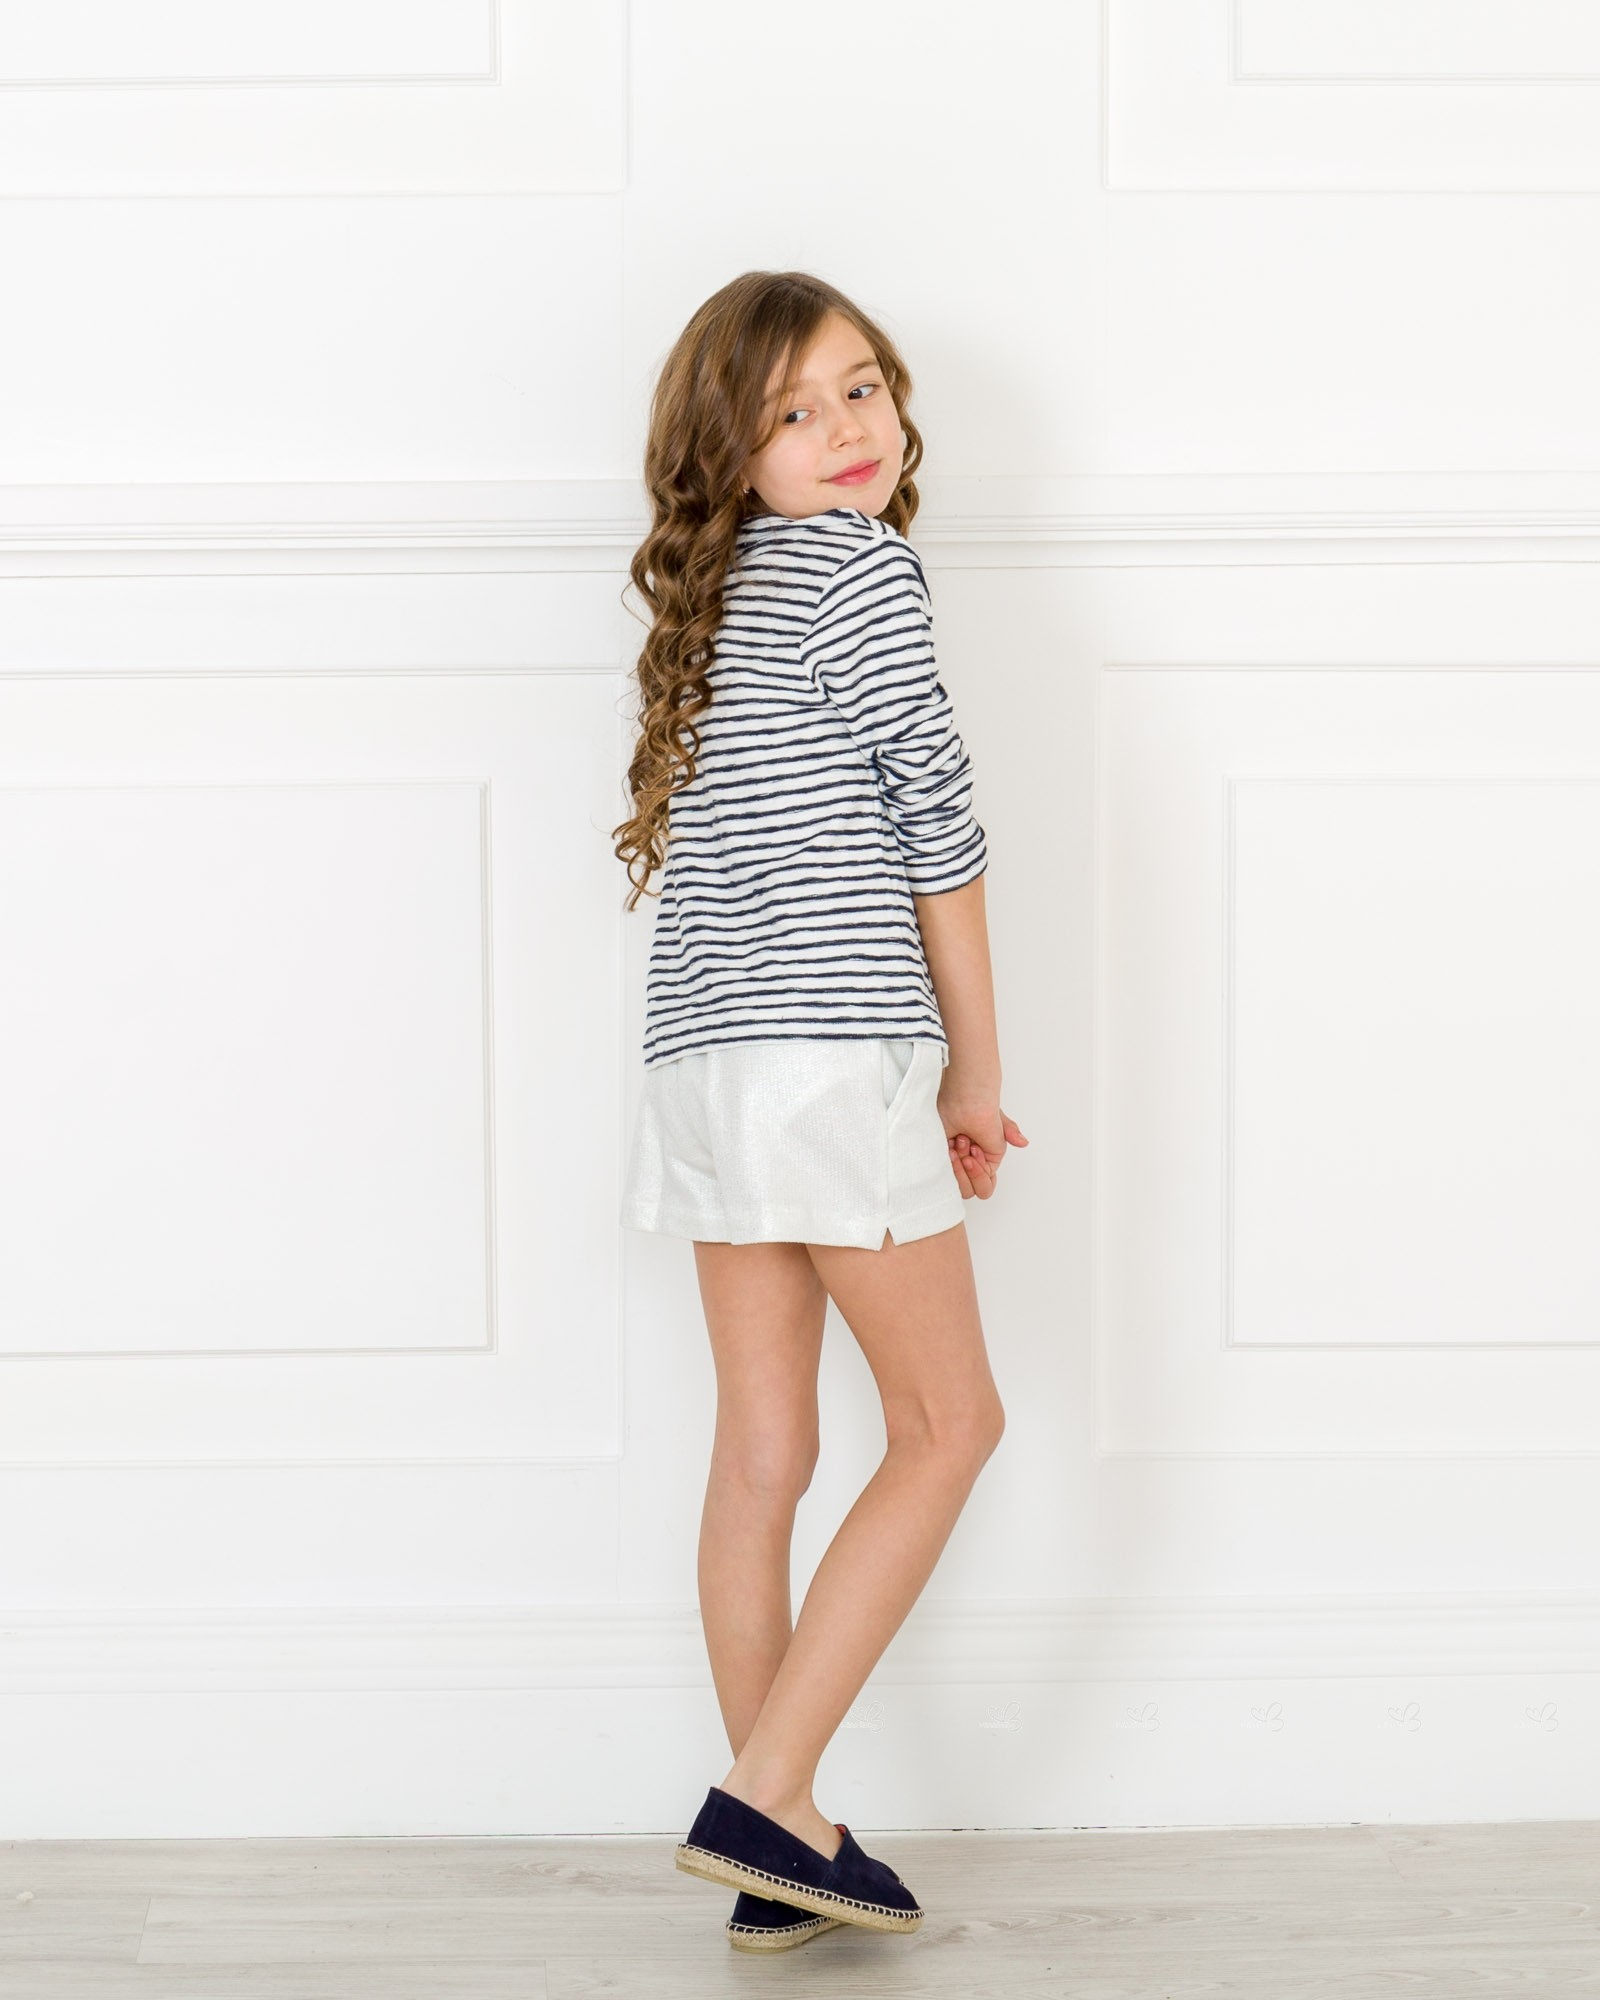 Girls Blue White Striped T Shirt With Silver Lurex Shorts Outfit